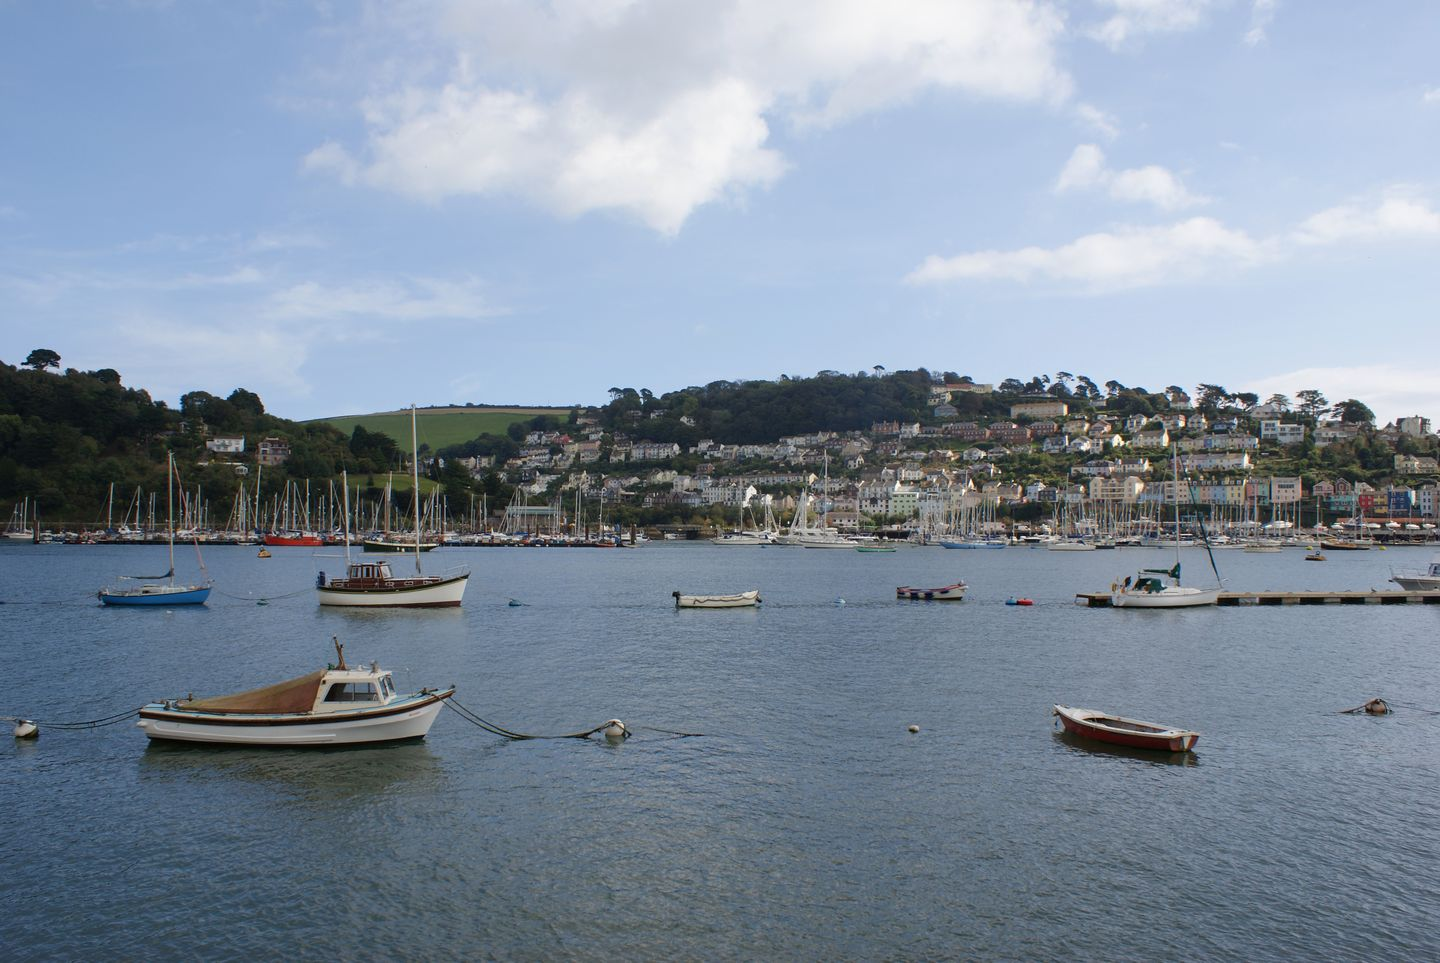 Boats on the Water in Dartmouth